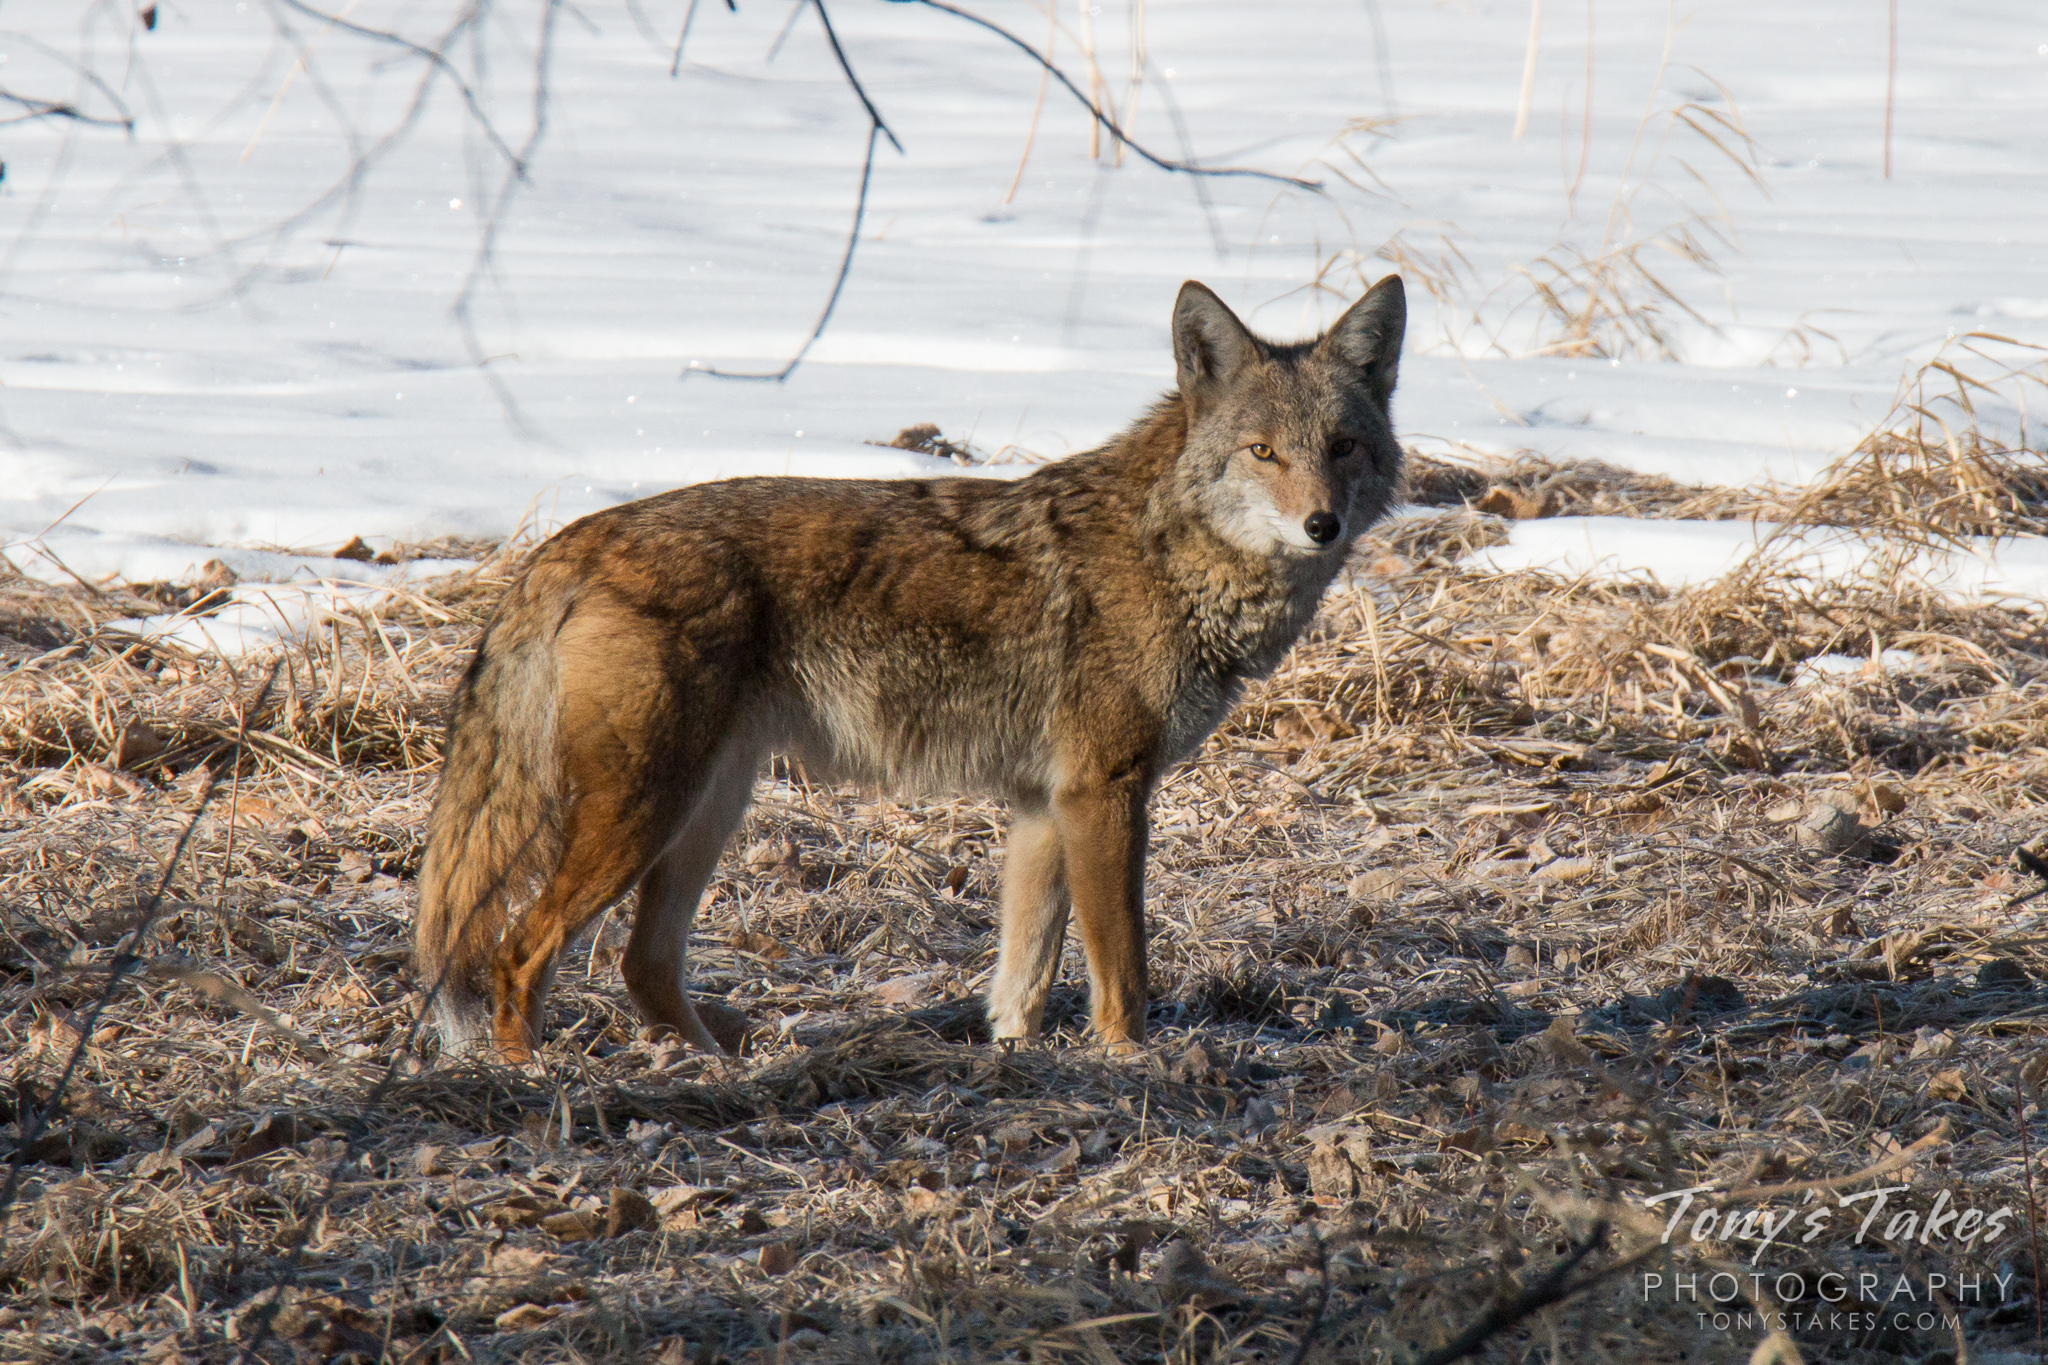 Coyote wakes from a nap, gives a nice closeup